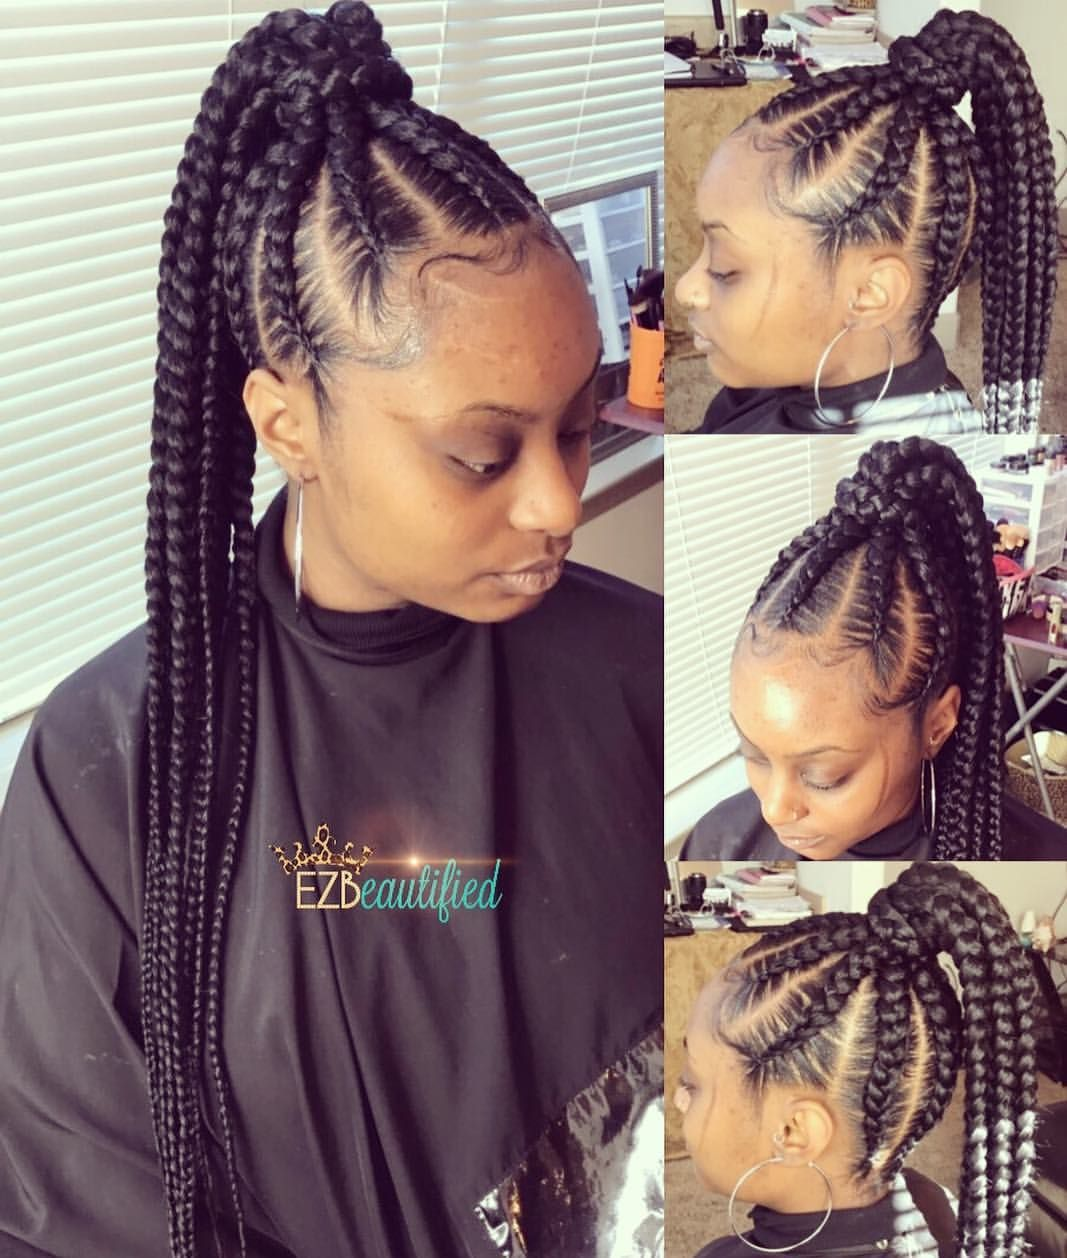 pin by kyra k on vanni hair | braided ponytail hairstyles